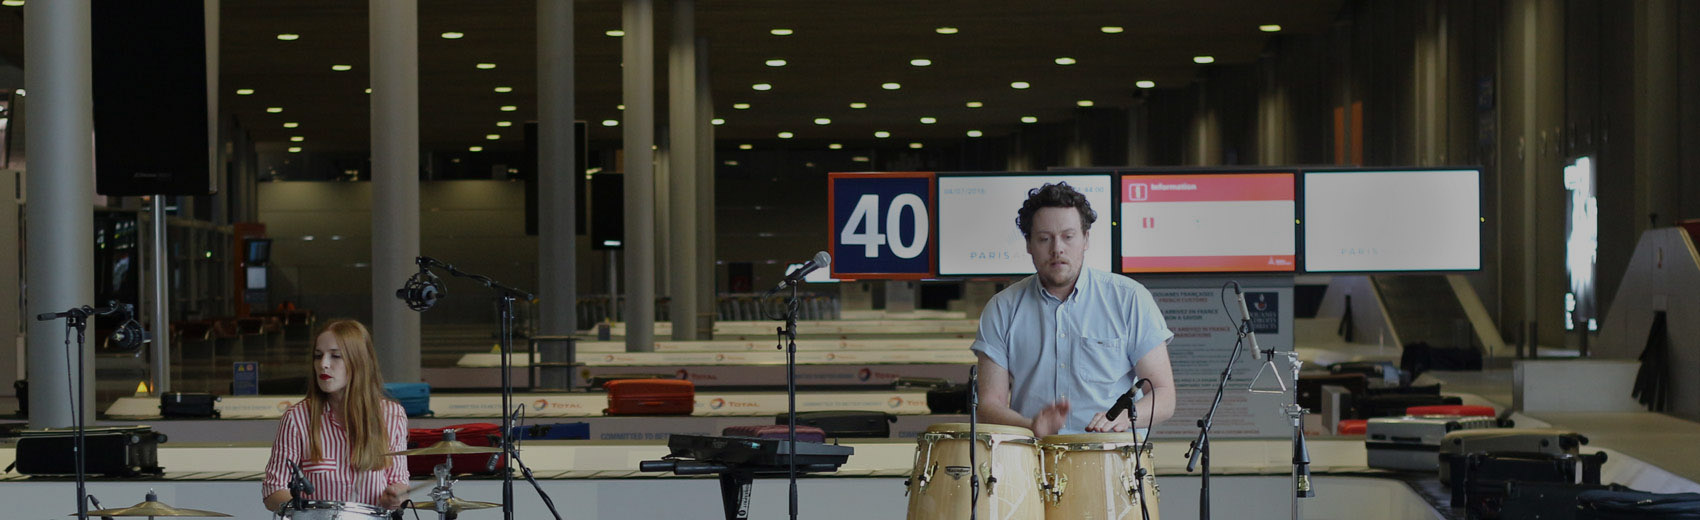 Header-Slideshow-Metronomy